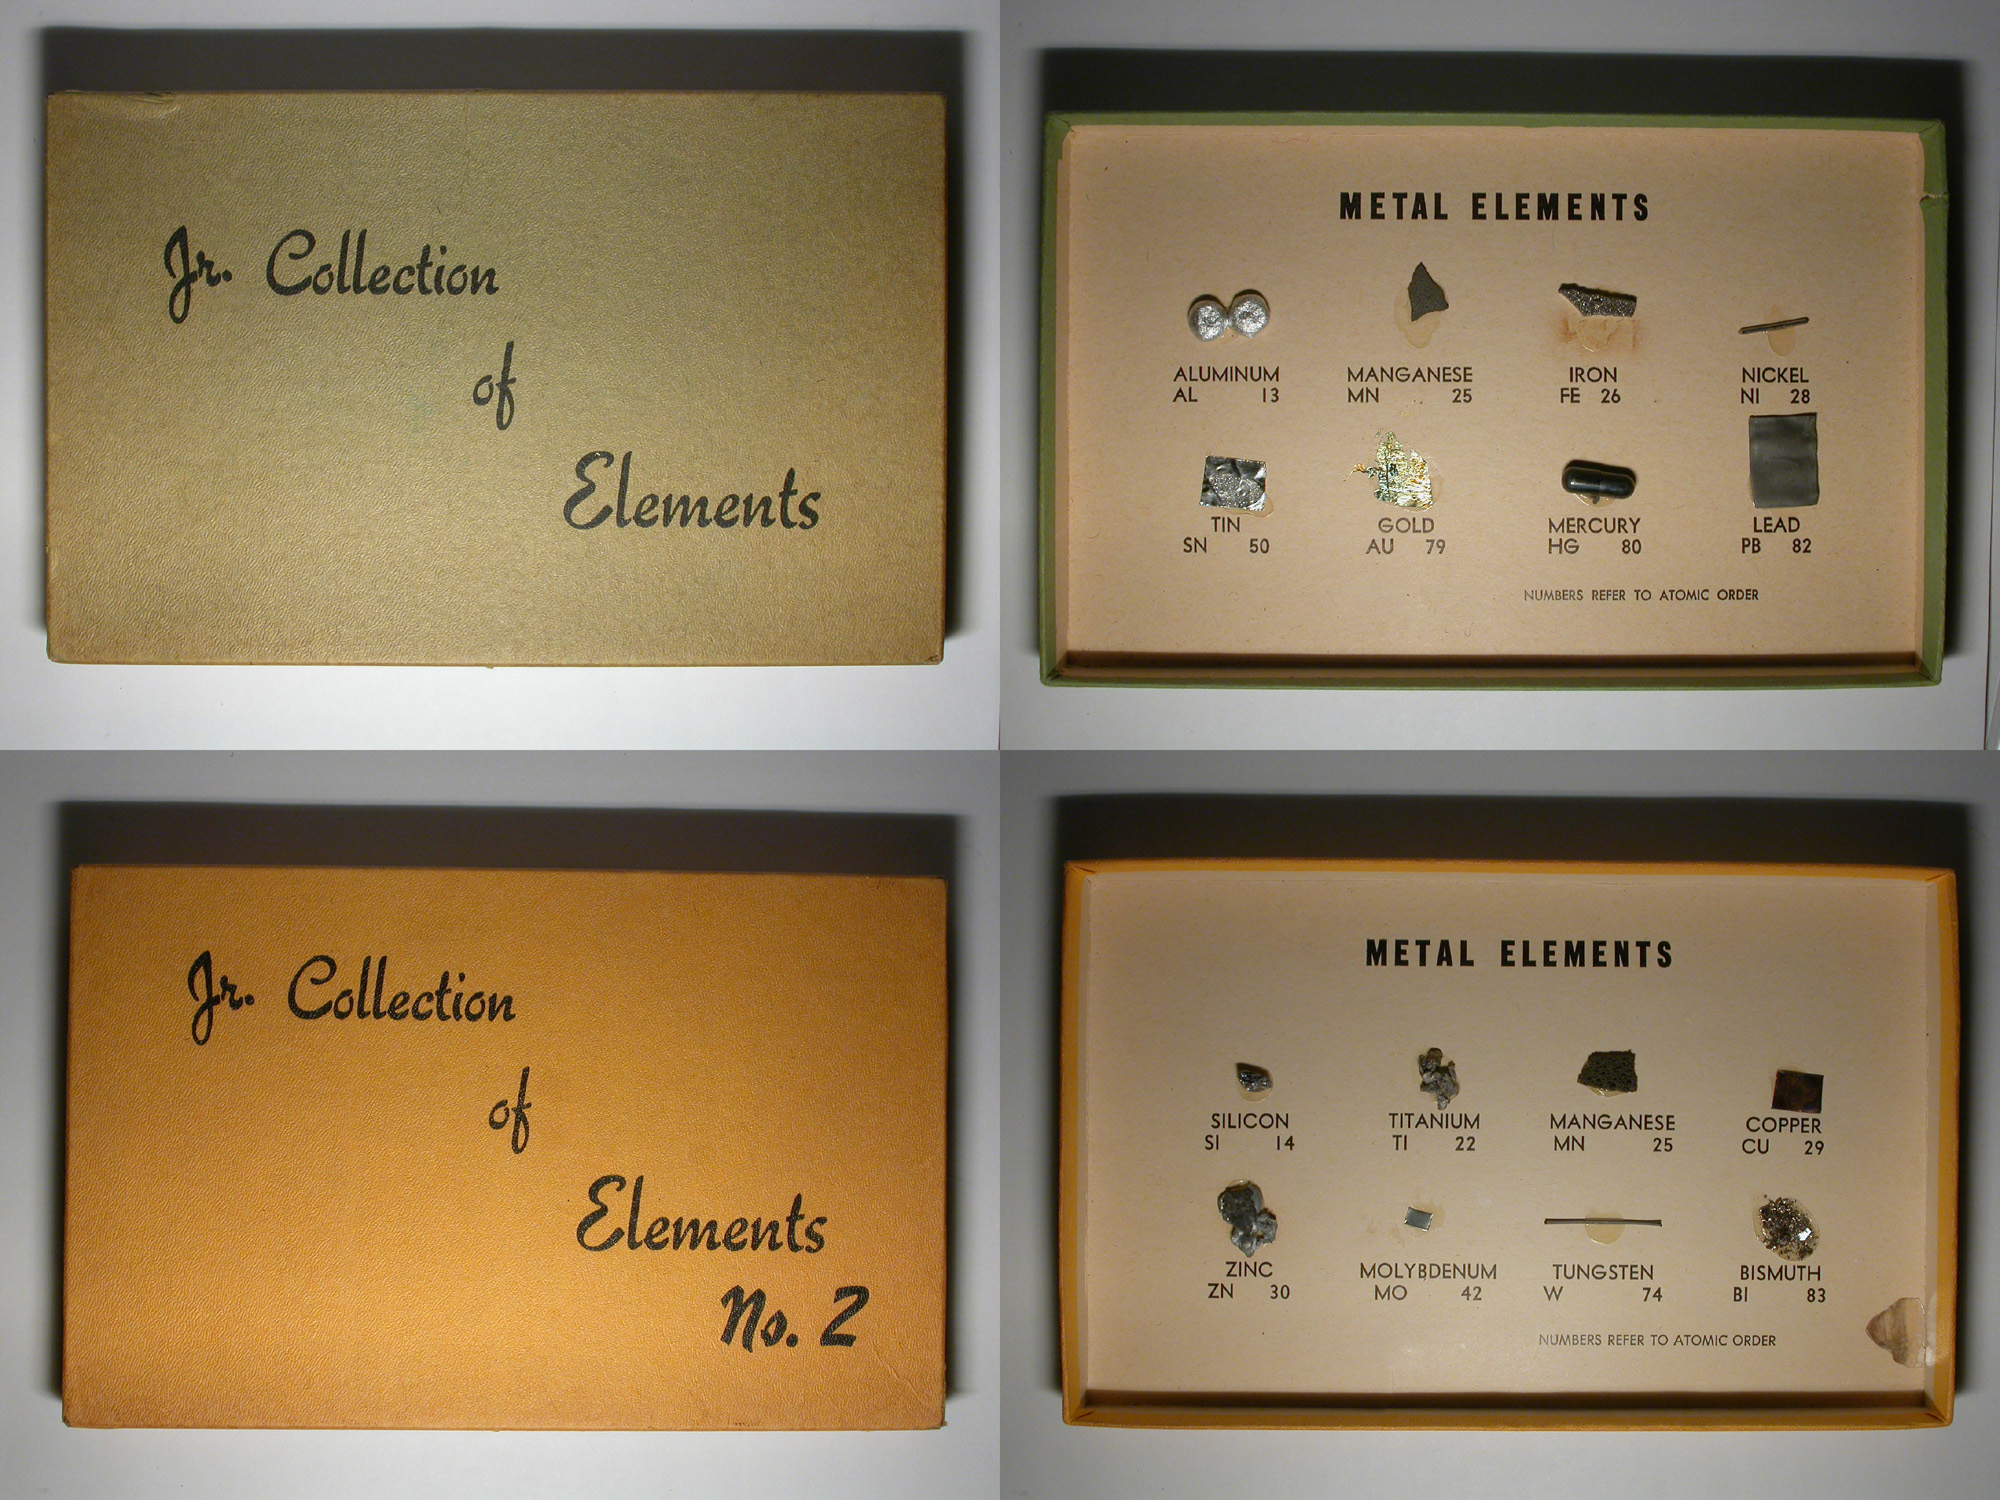 Pictures stories and facts about the element mercury in the jr collection of elements gamestrikefo Choice Image